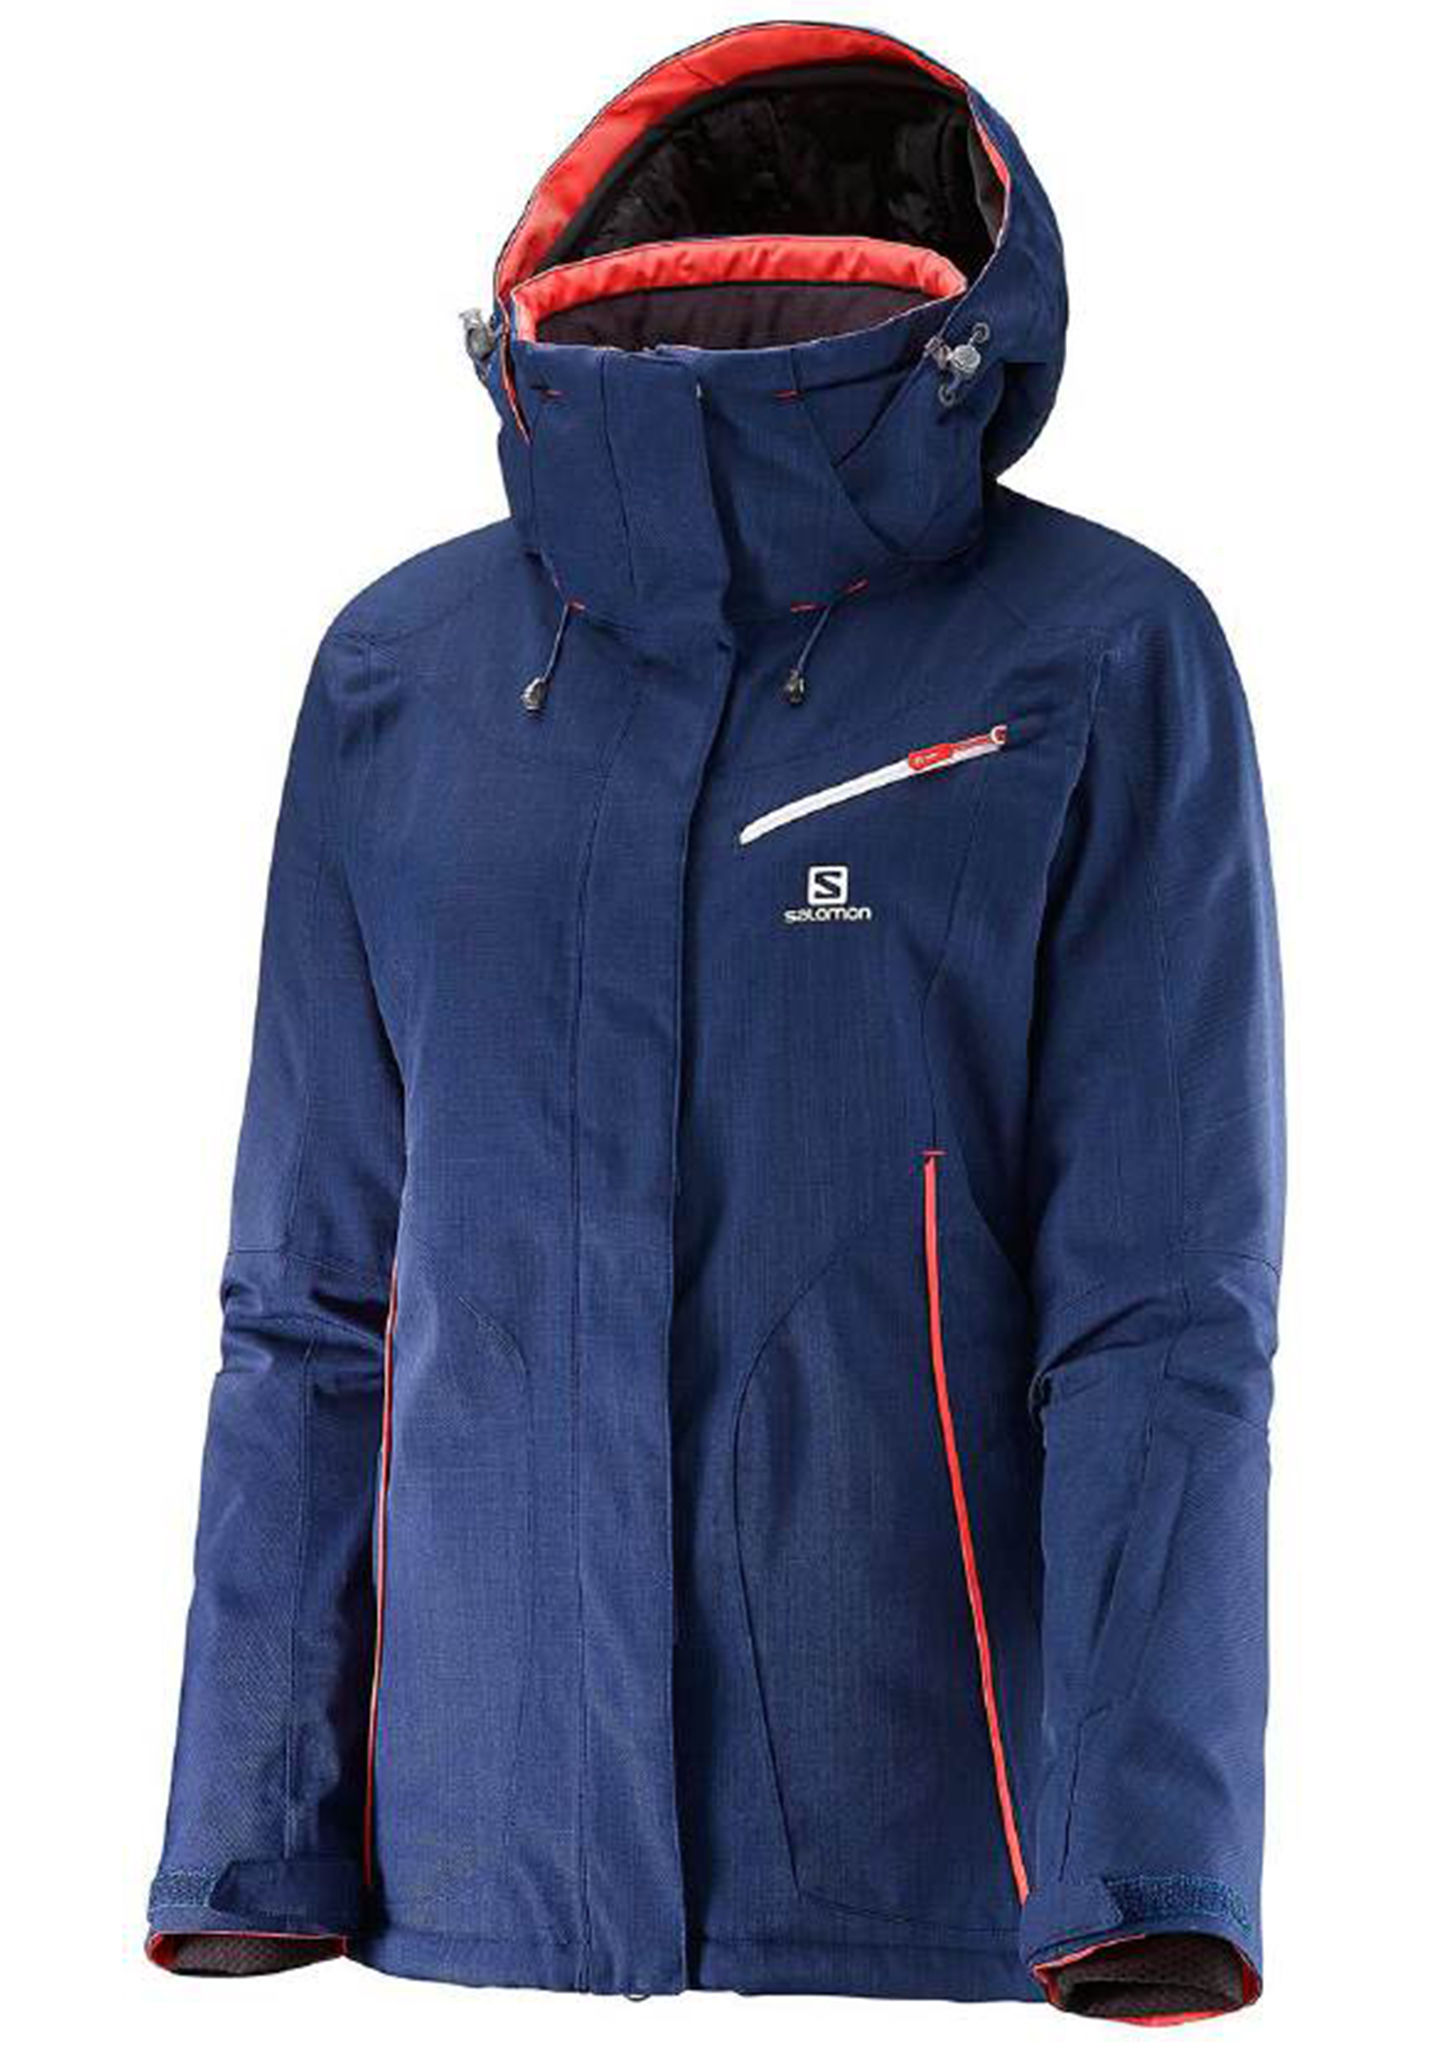 Salomon winterjacke damen